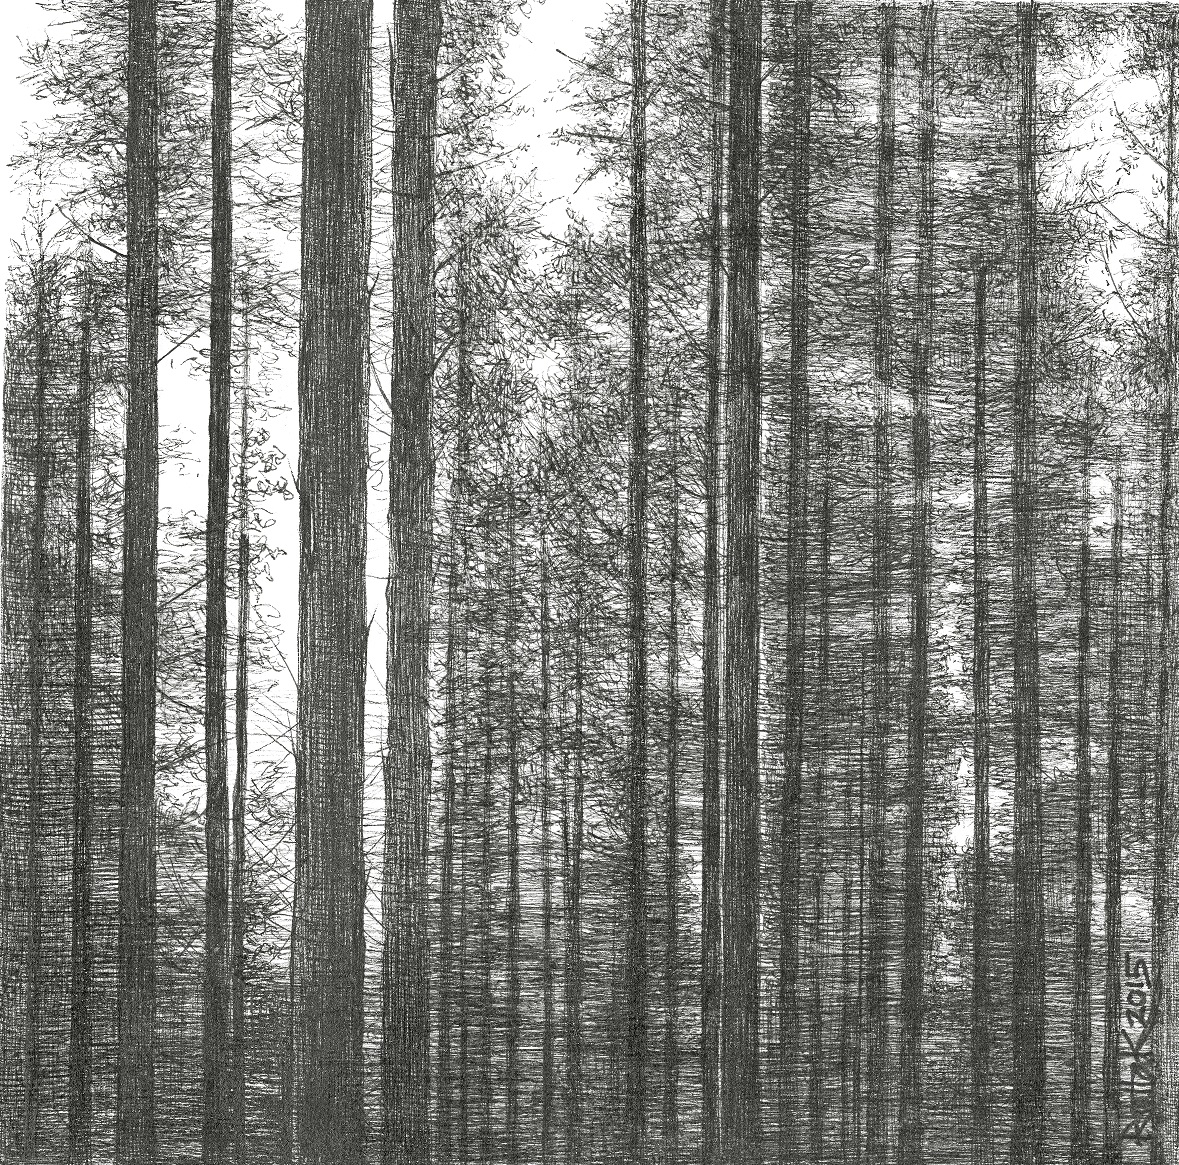 Riitta Kuisma, Into the woods II, 2015, 20x20cm, fine pen drawing on paper.jpg